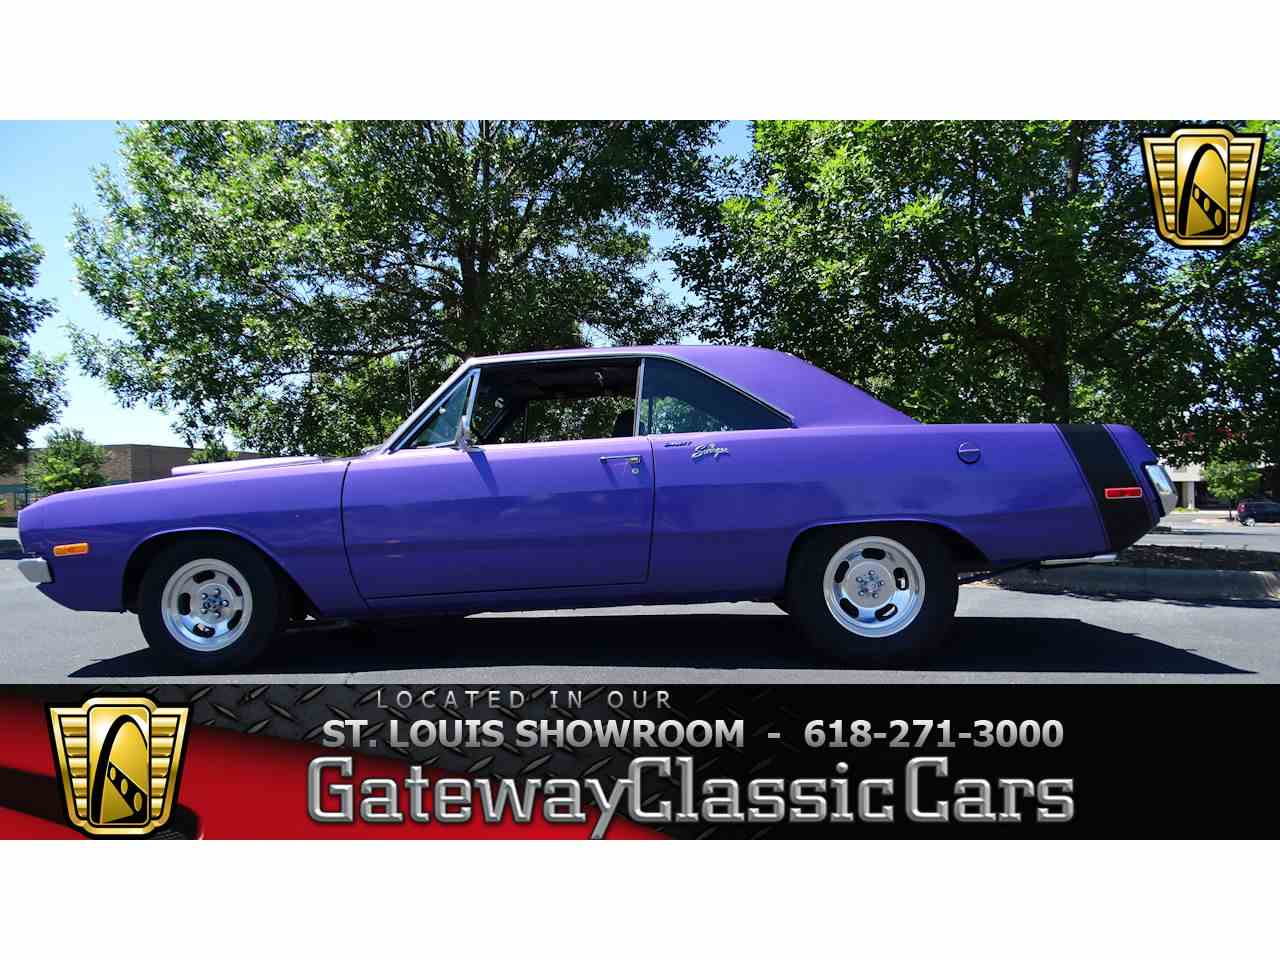 1972 dodge dart for sale classiccars cc 995846 large picture of 72 dart lcee publicscrutiny Image collections